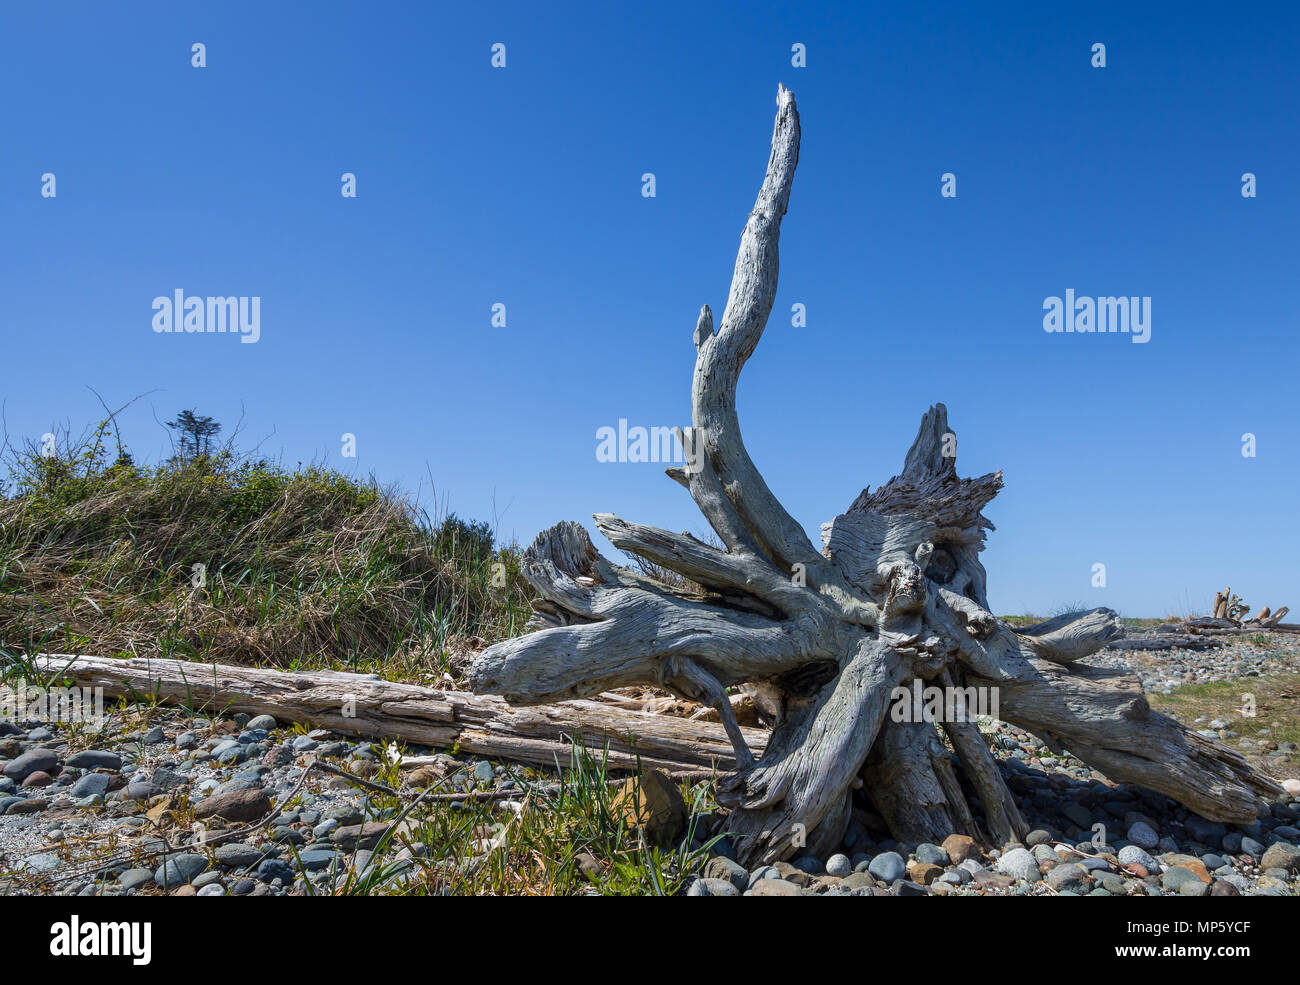 Beached tree trunk and roots, Hornby Island, BC, Canada. - Stock Image